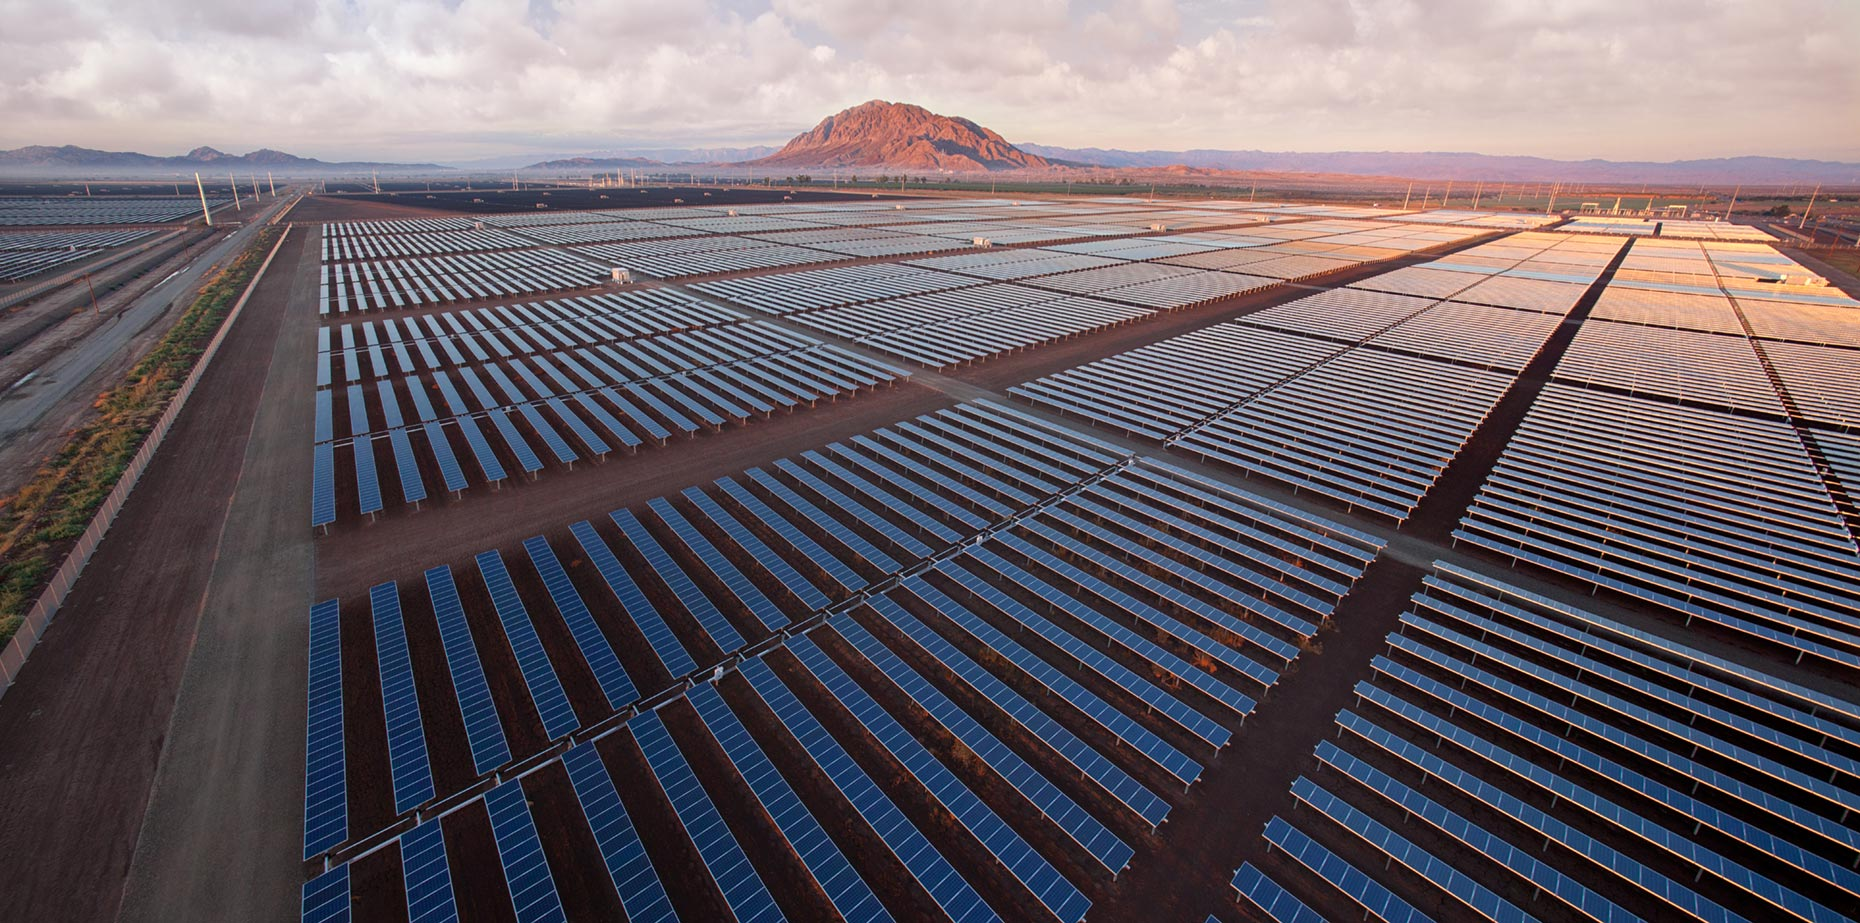 Aerial drone photograph of large solar array in California | San Diego commercial photographer P2 Photography specializes in professional photographs and video for commercial, advertising and corporate clients.